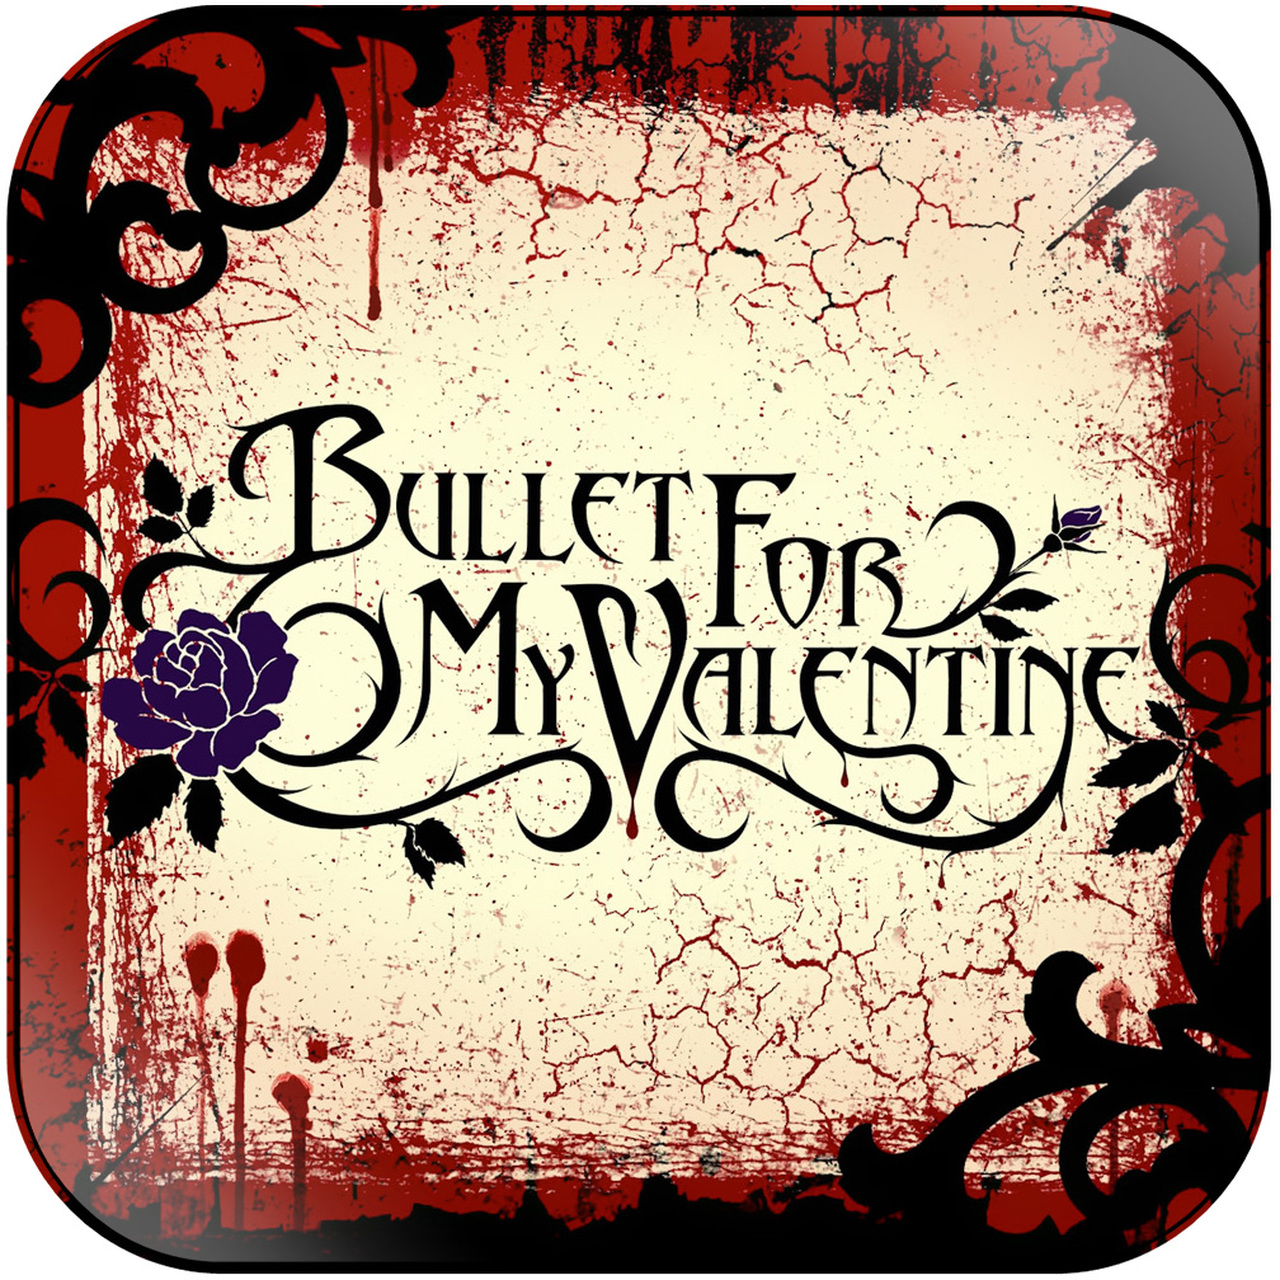 Bullet for my valentine clipart clipart black and white stock Bullet for My Valentine - Bullet For My Valentine-2 Album Cover Sticker  Album Cover Sticker clipart black and white stock